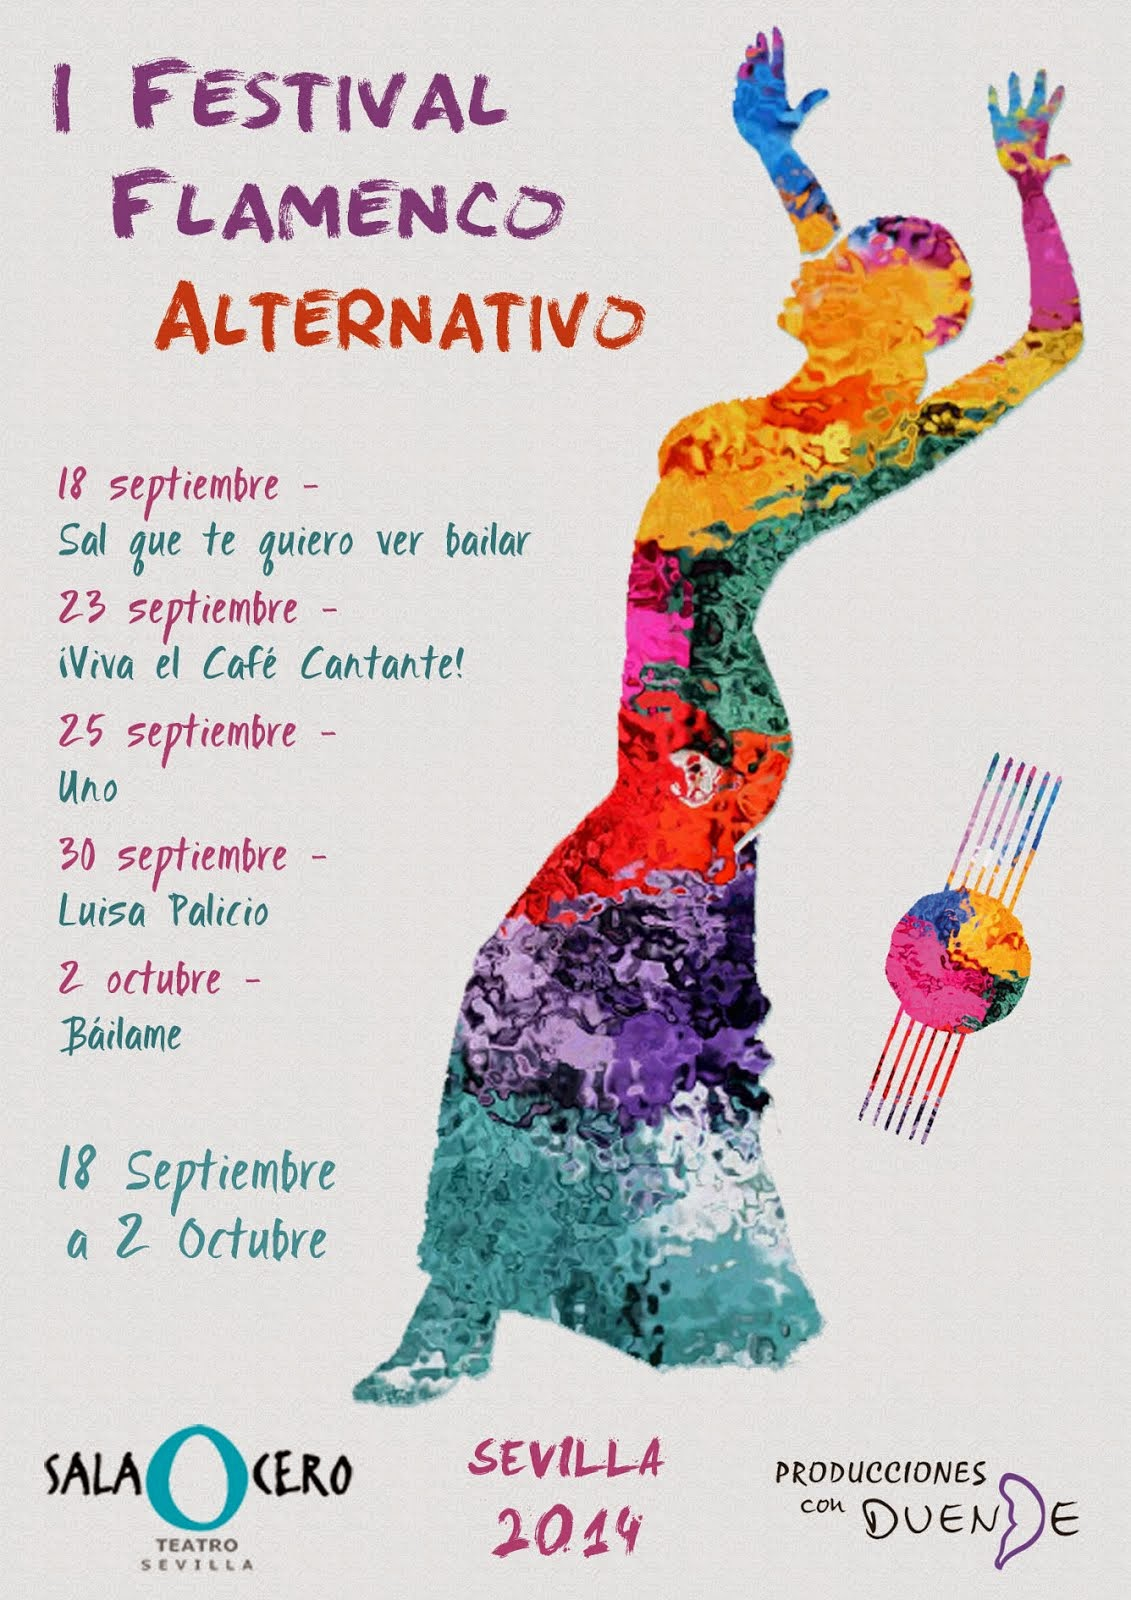 I Festival Flamenco Alternativo